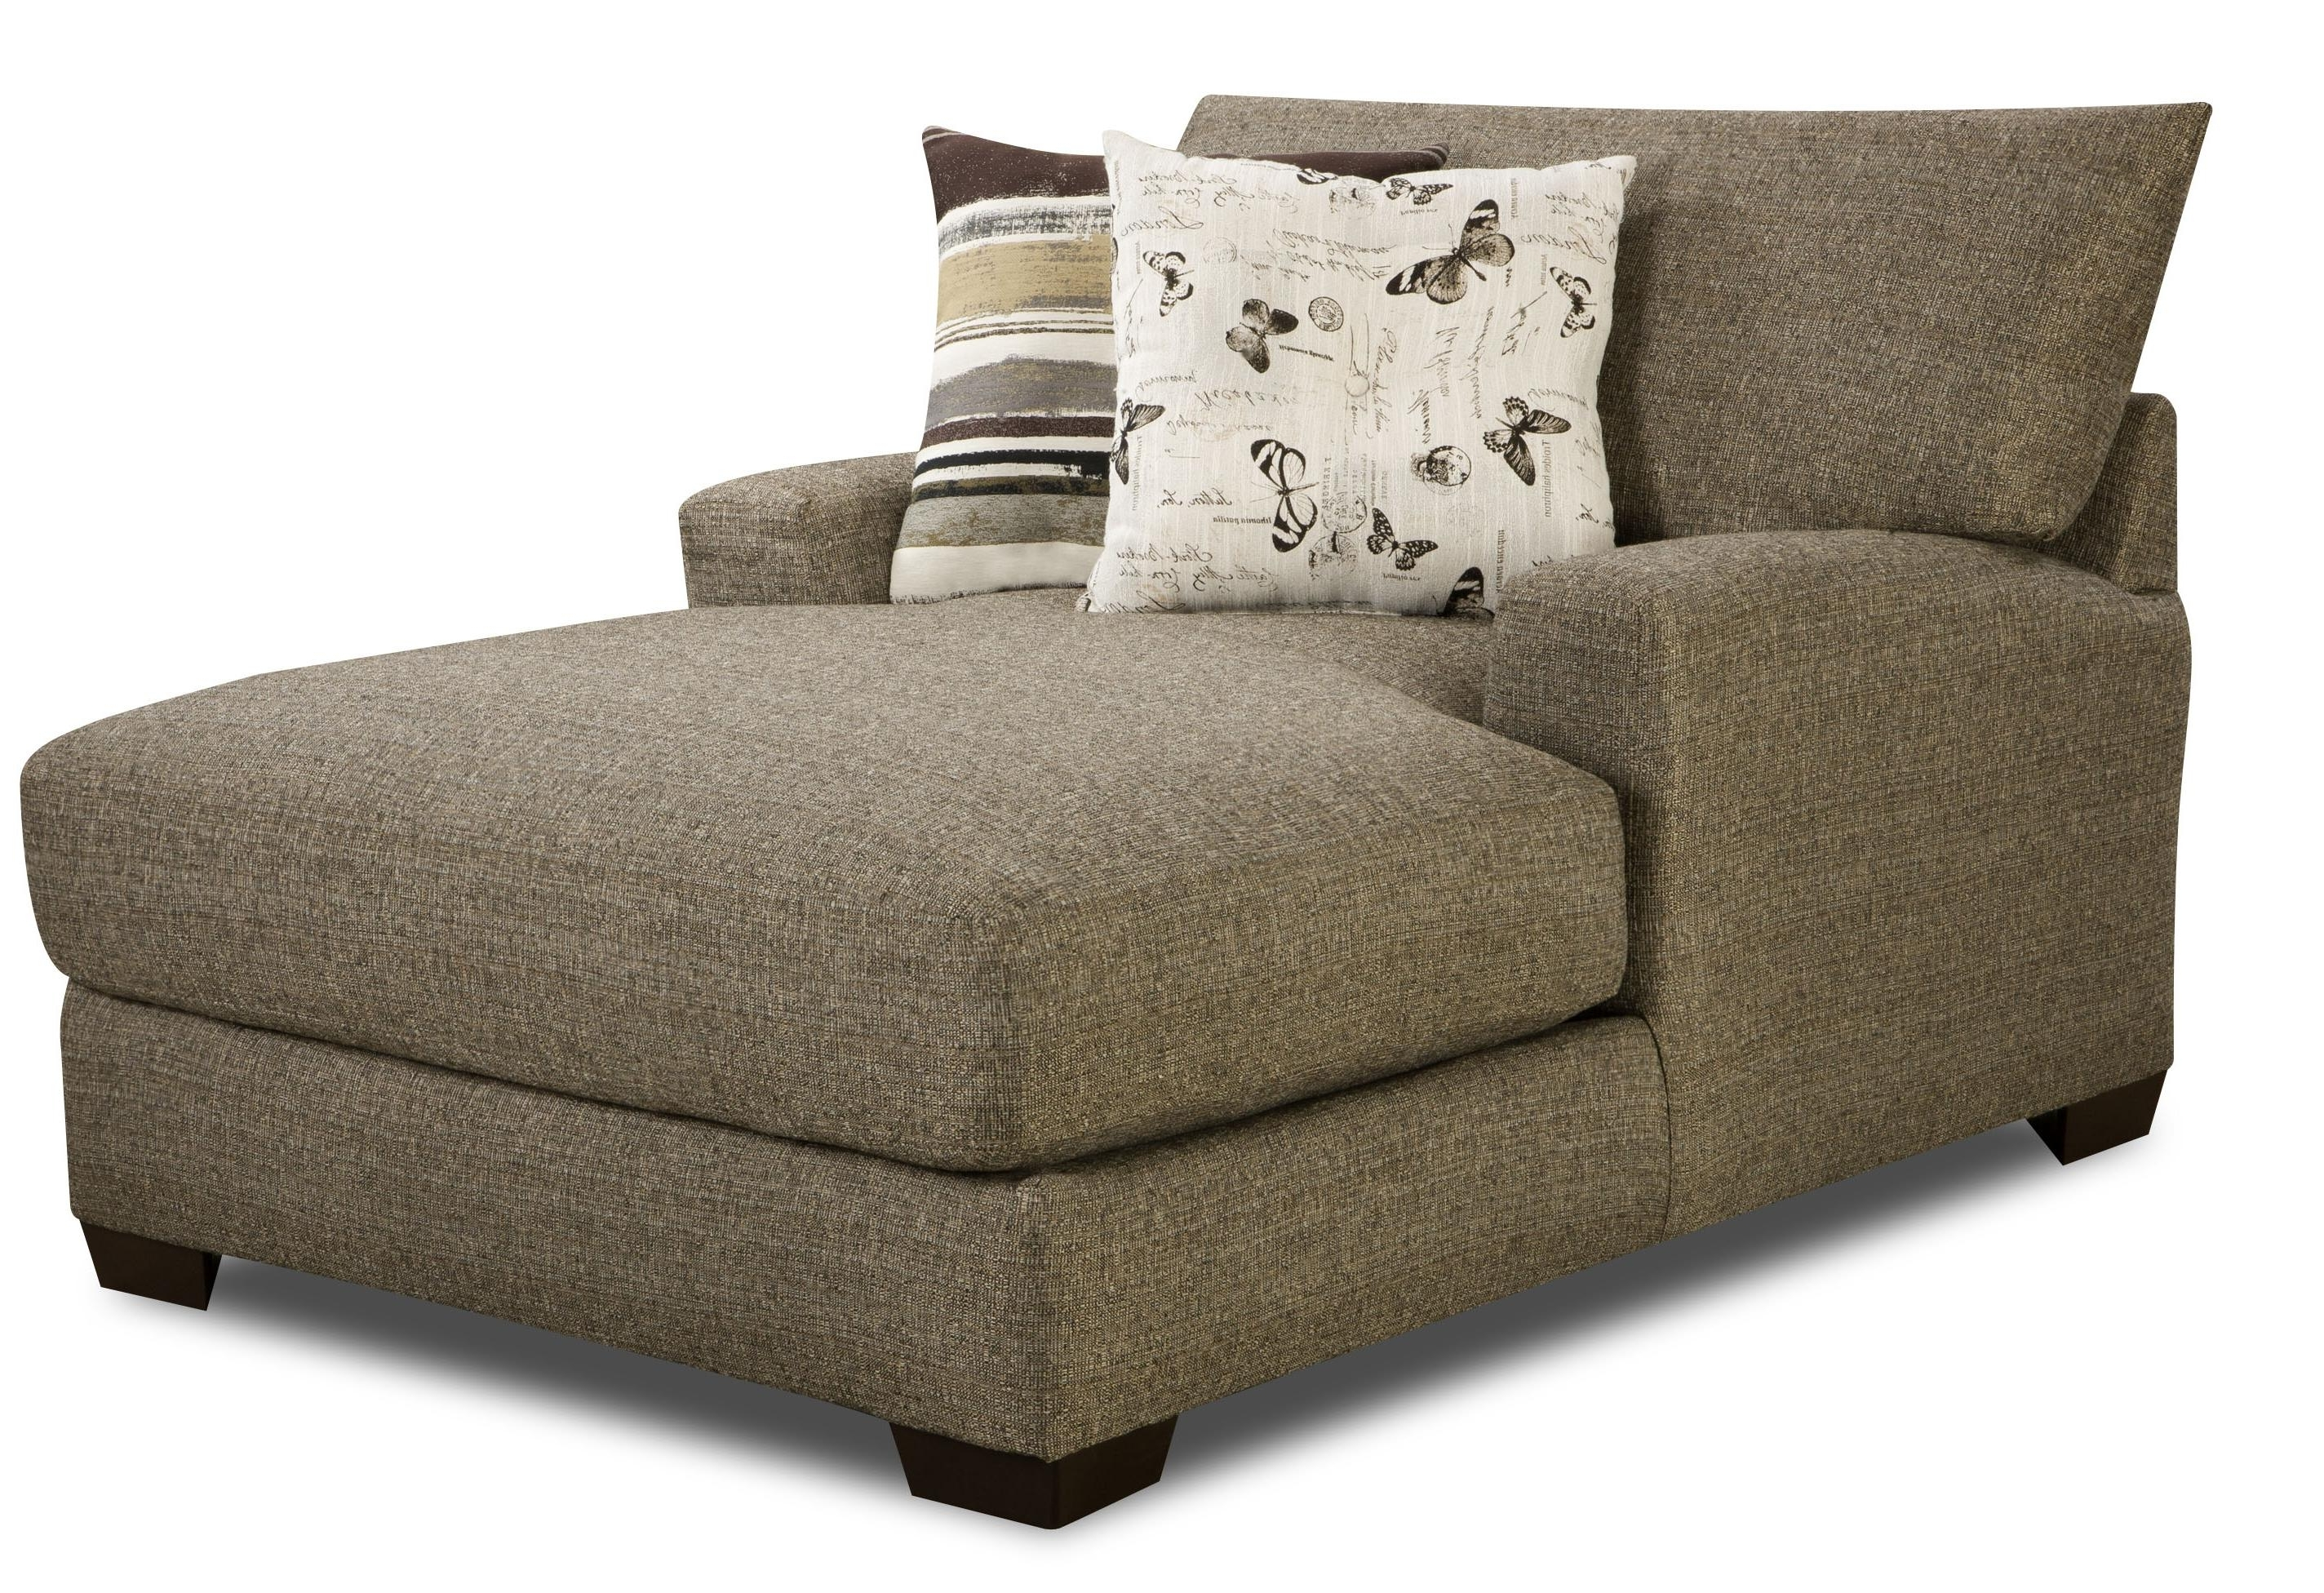 Current Chaise Lounges With Arms Intended For Fabric Chaise Lounge Chairs With Arms • Lounge Chairs Ideas (View 7 of 15)